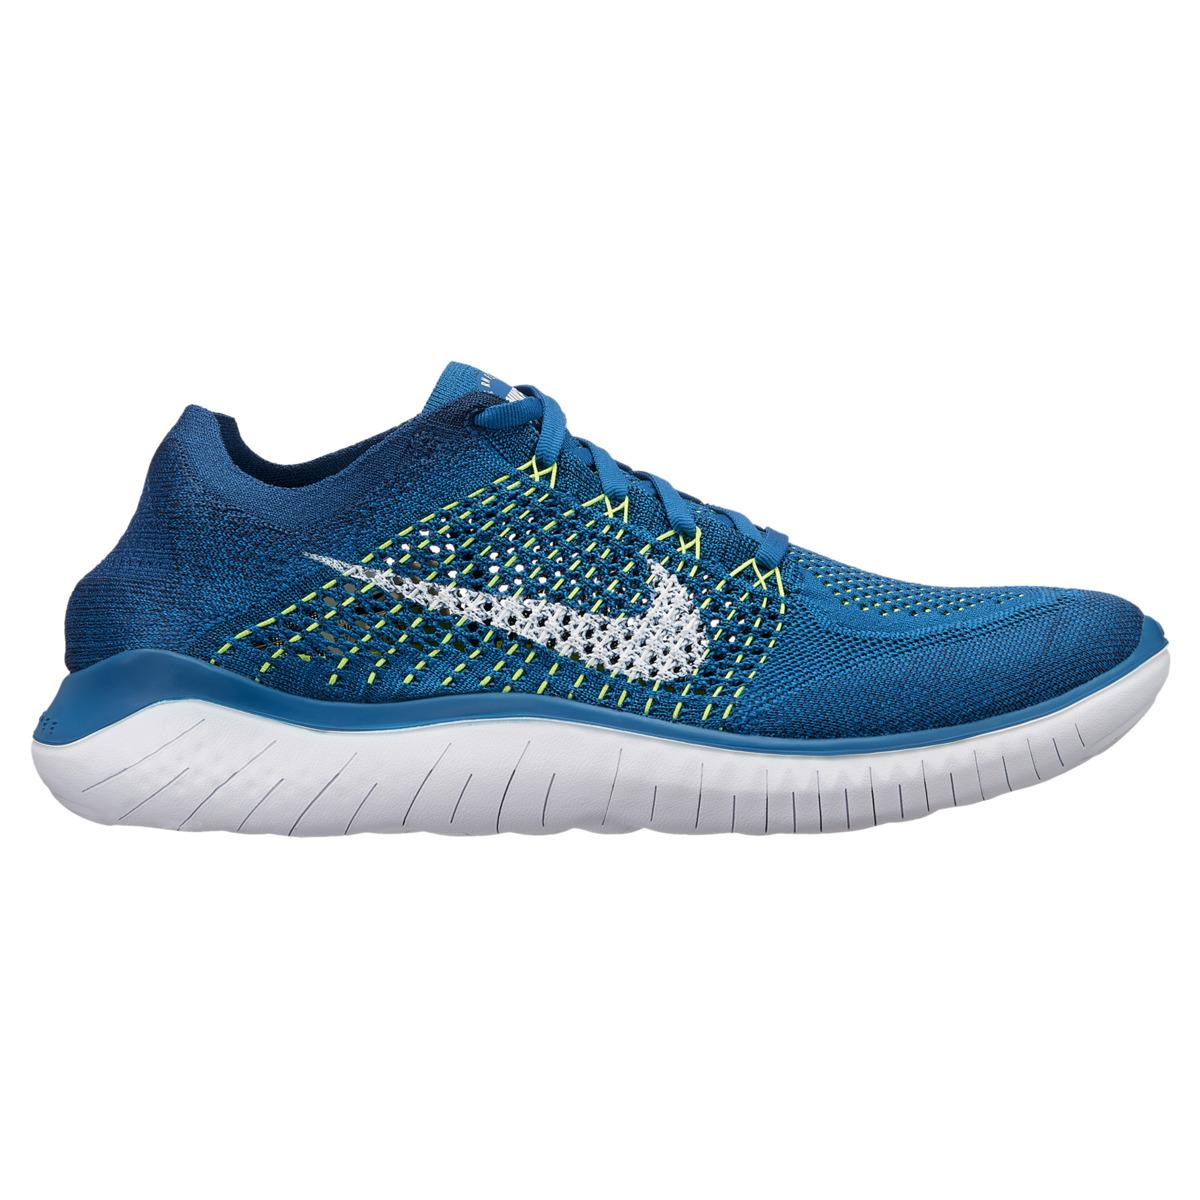 381d155832ab Nike. Men s Blue Free Rn Flyknit 2018 Running Shoes. £111 £89 From El Corte  Ingles